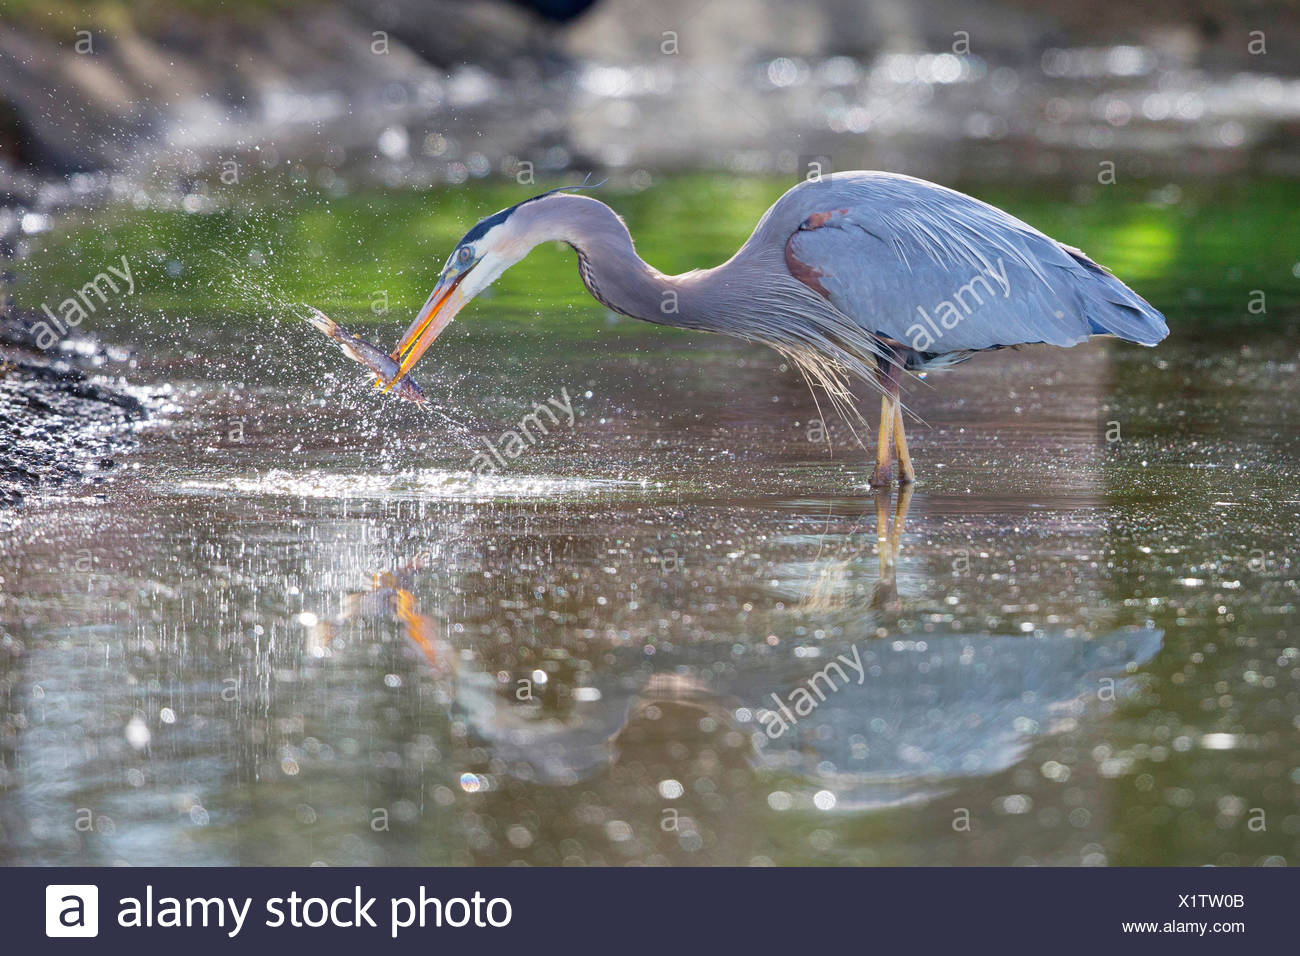 great blue heron (Ardea herodias), preying a catfish, with reflexion in the water, USA, Arizona - Stock Image